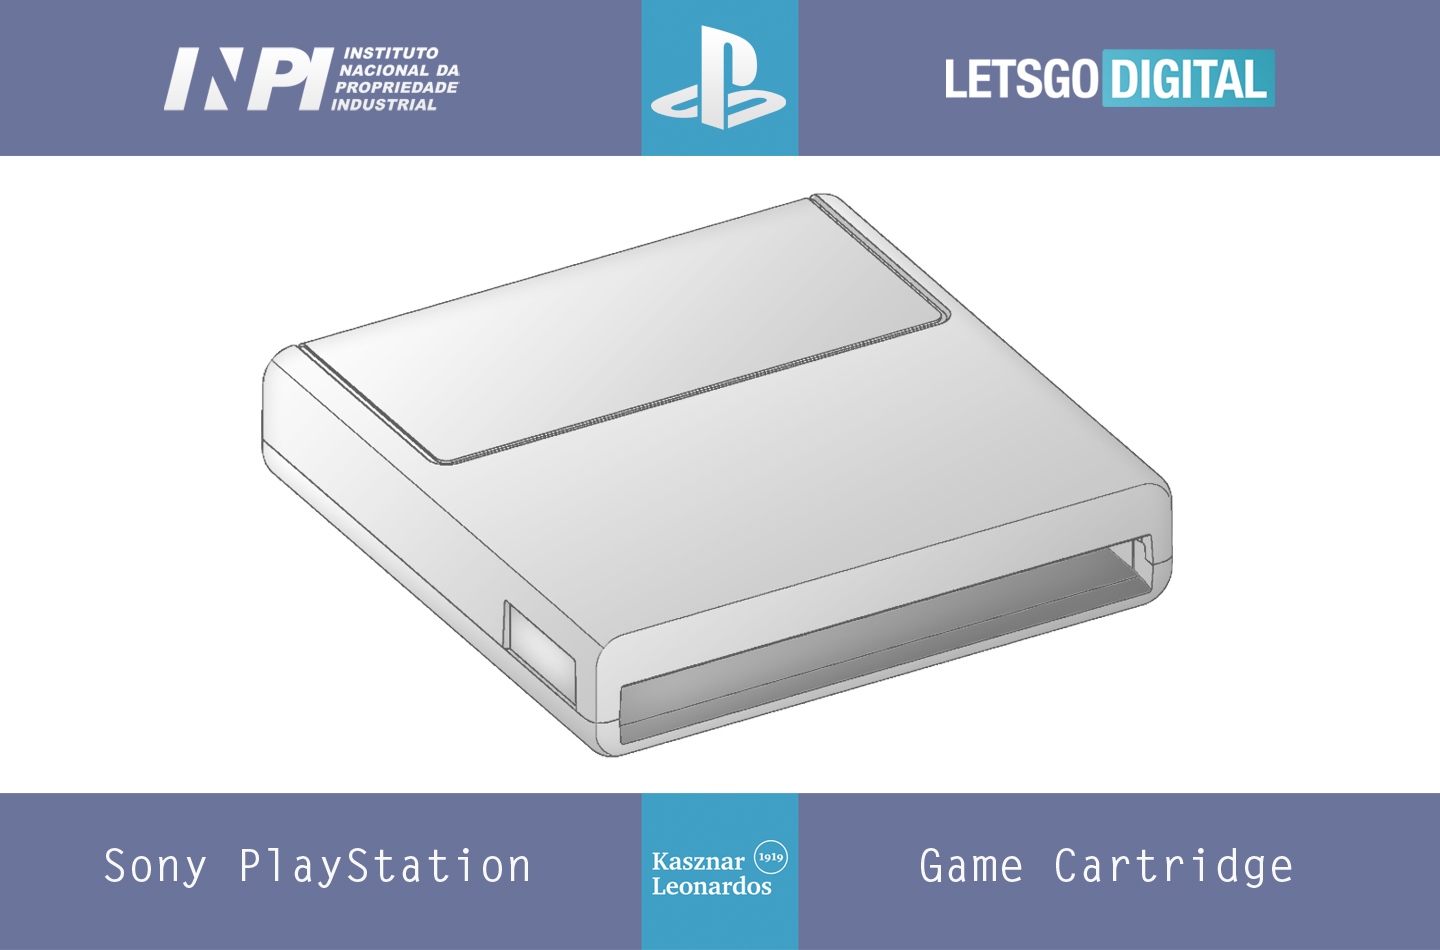 sony-playstation-game-cartridge.jpg